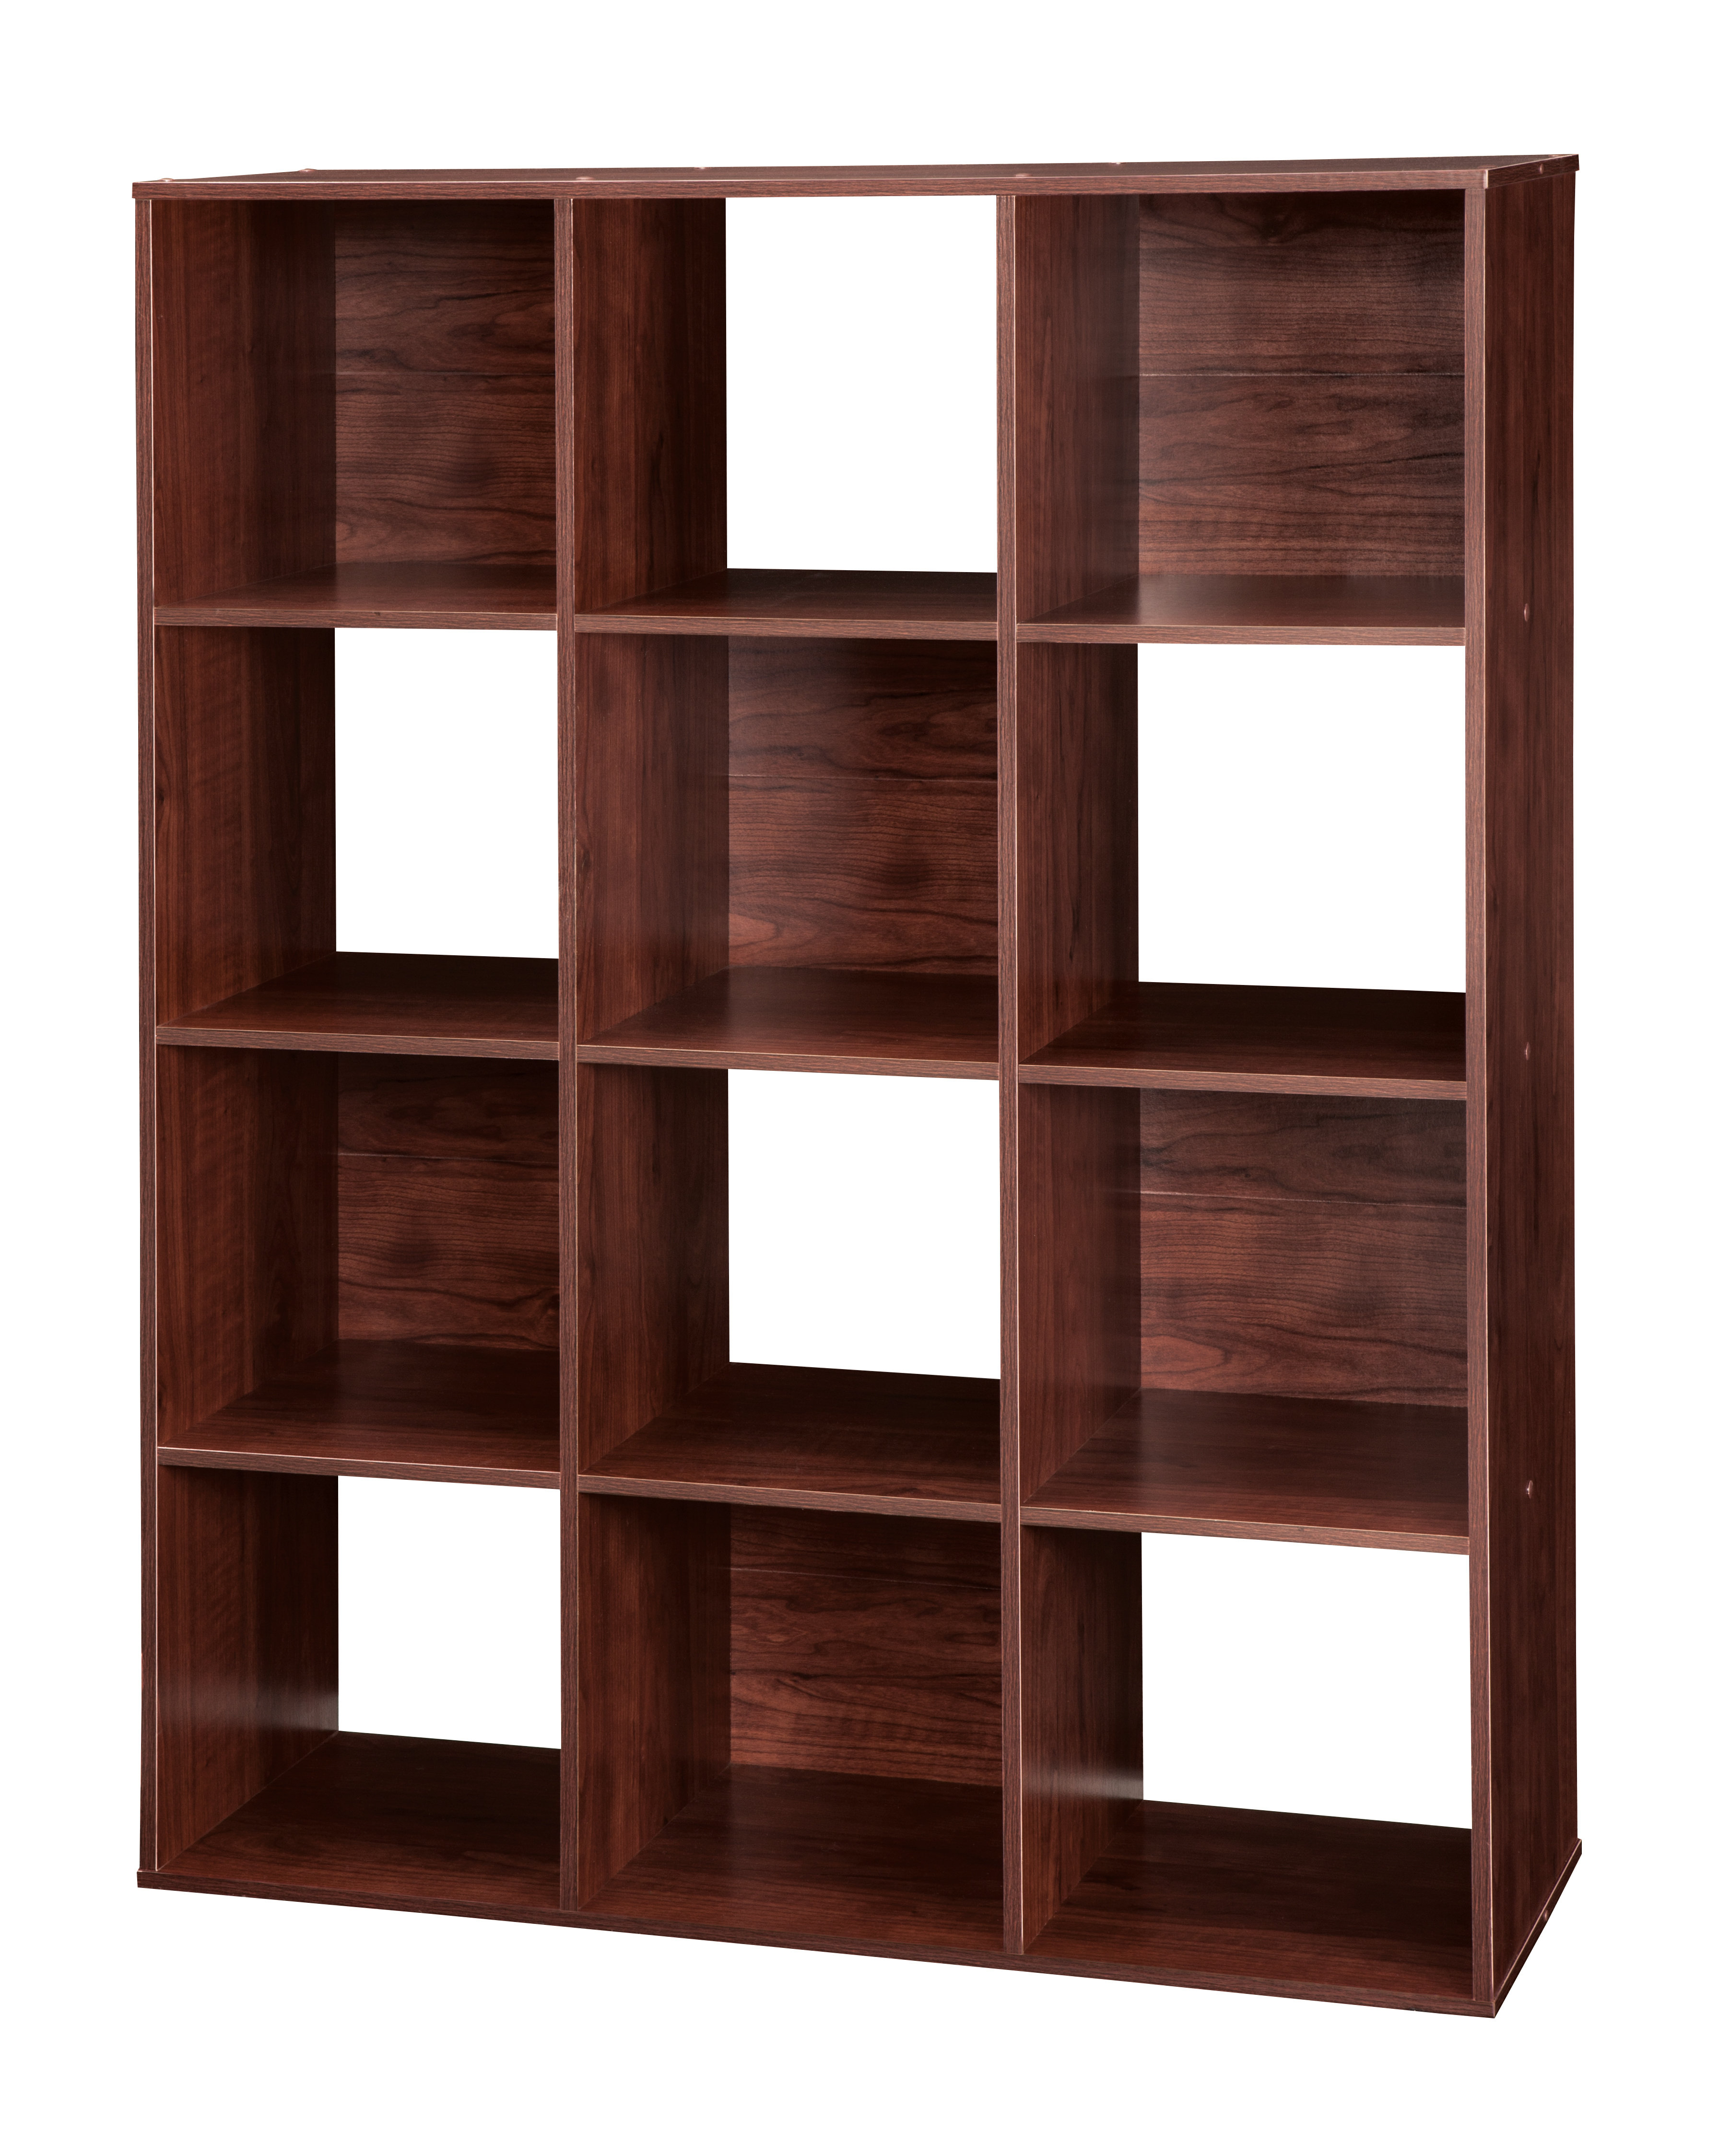 Lancashire Cube Bookcases Throughout Latest Closetmaid Cubicals Cube Bookcase (View 11 of 20)